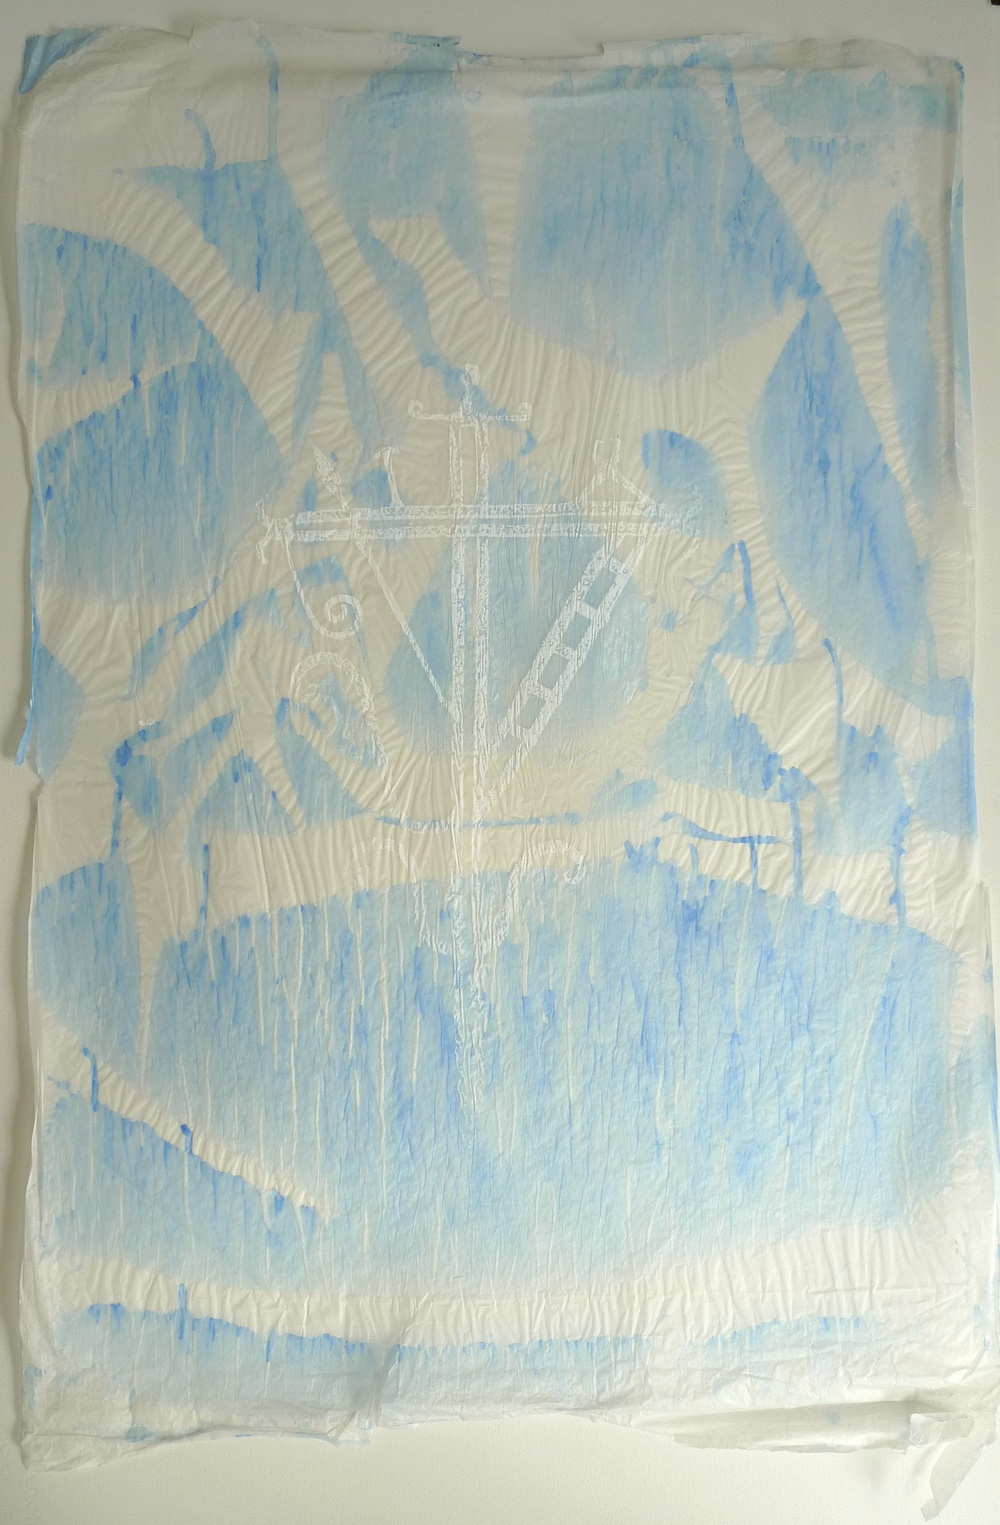 Impression Tracing Paper Ink Stain in Blue Silk Screen  23 x 34""